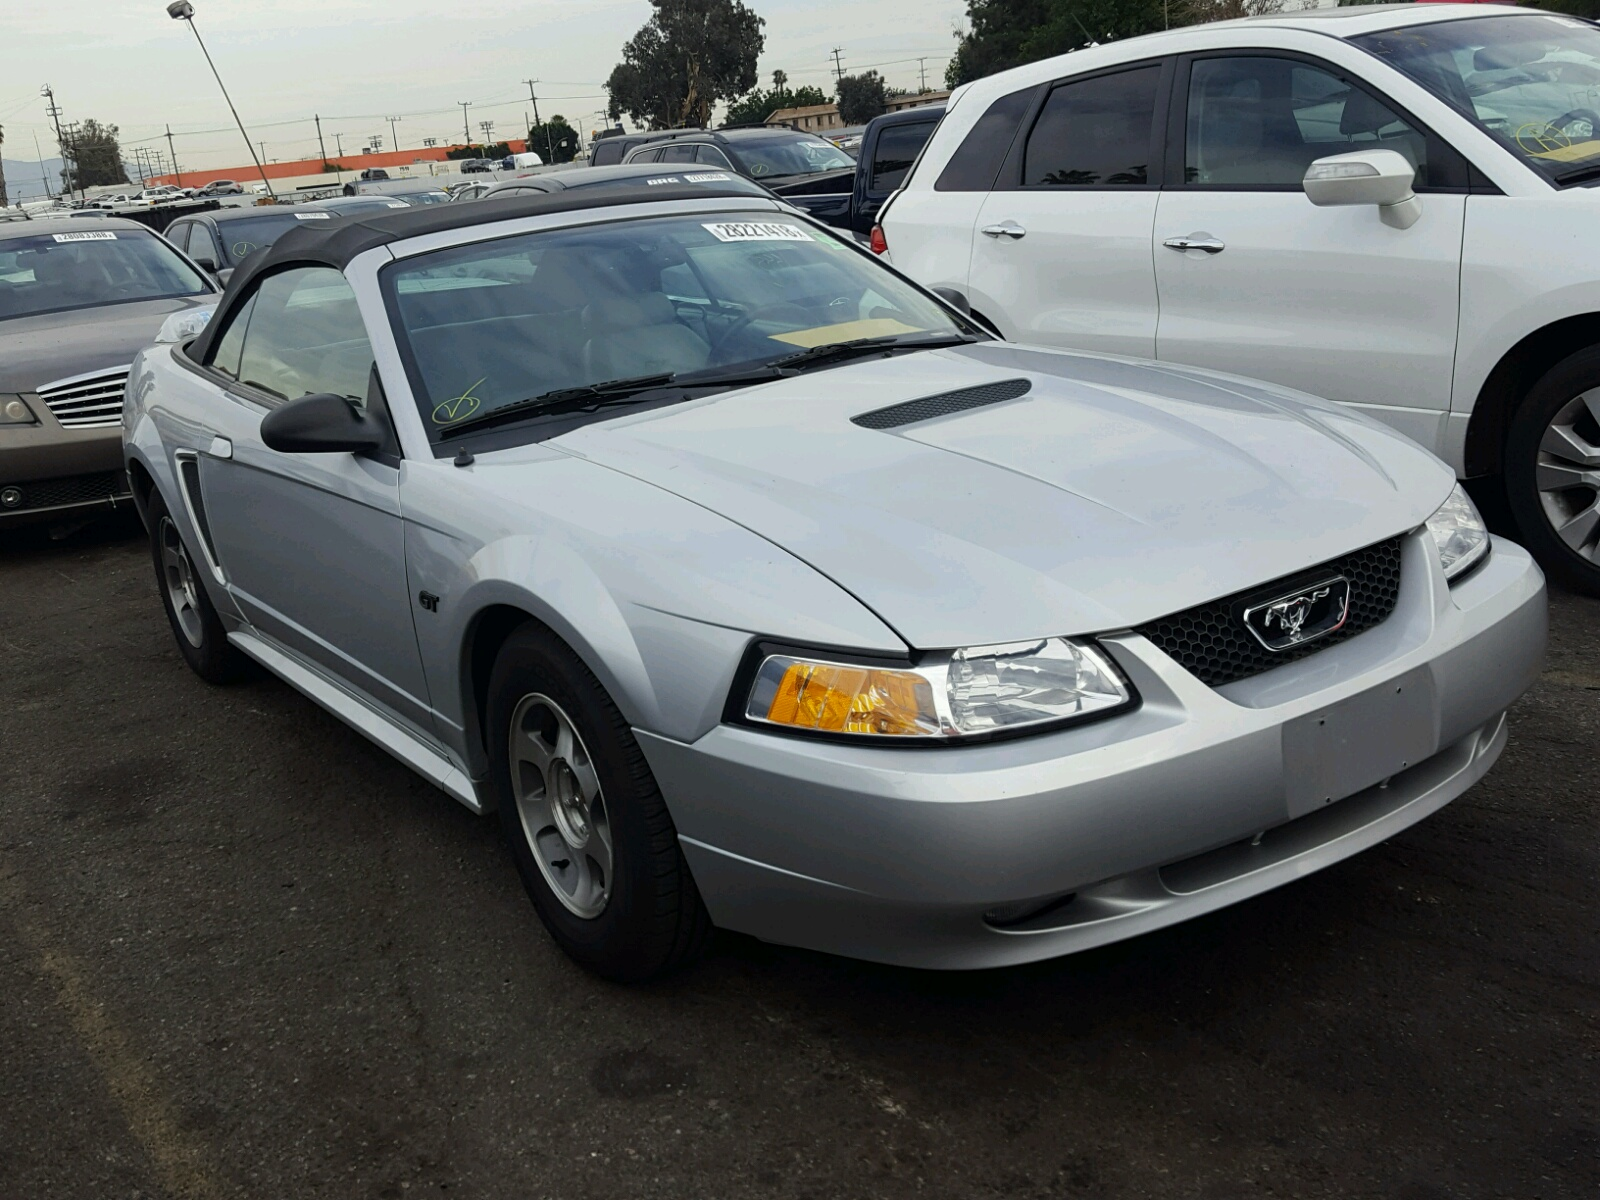 2000 Ford Mustang Gt 4 6l Left View